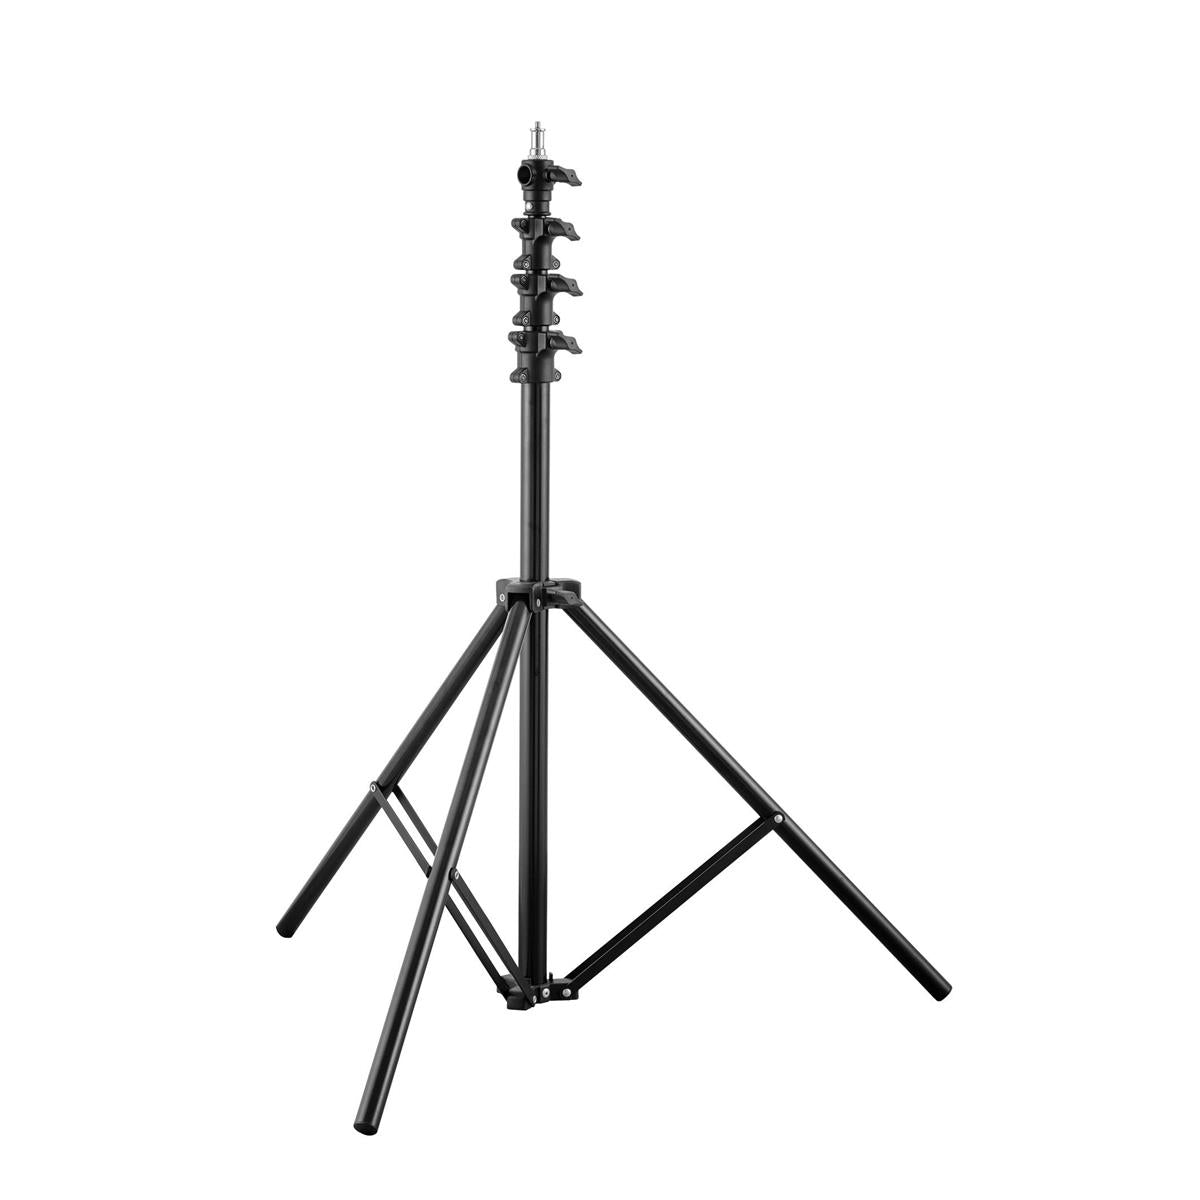 Studio Light Stand Air-cushion 8' /242cm 4-Section